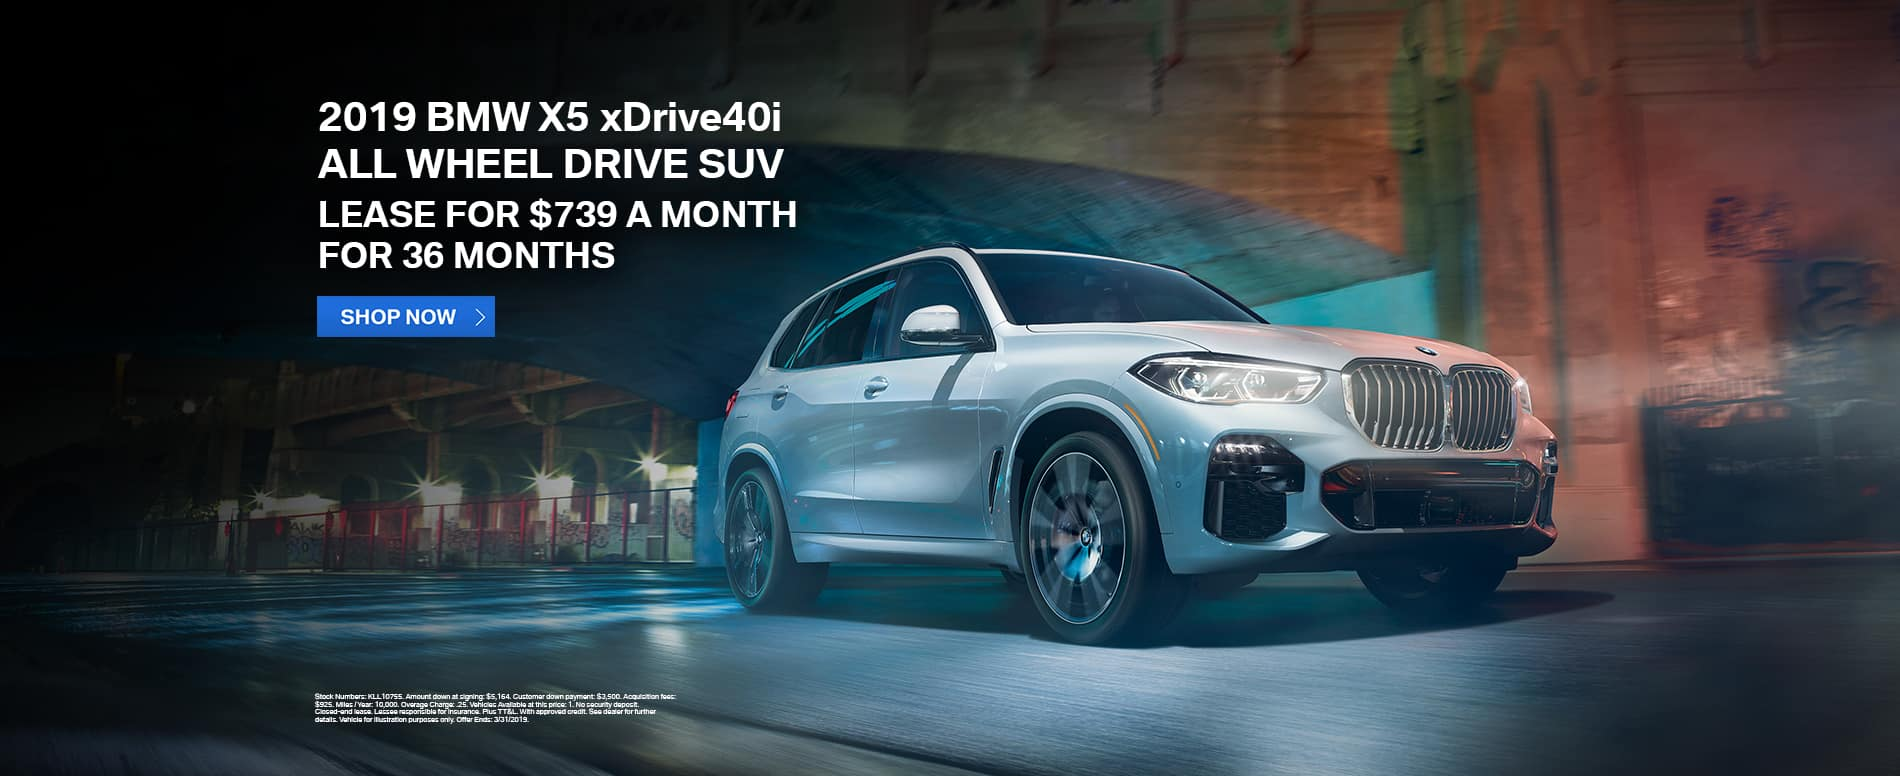 lease-2019-bmw-x5-xdrive40i-awd-suv-tulsa